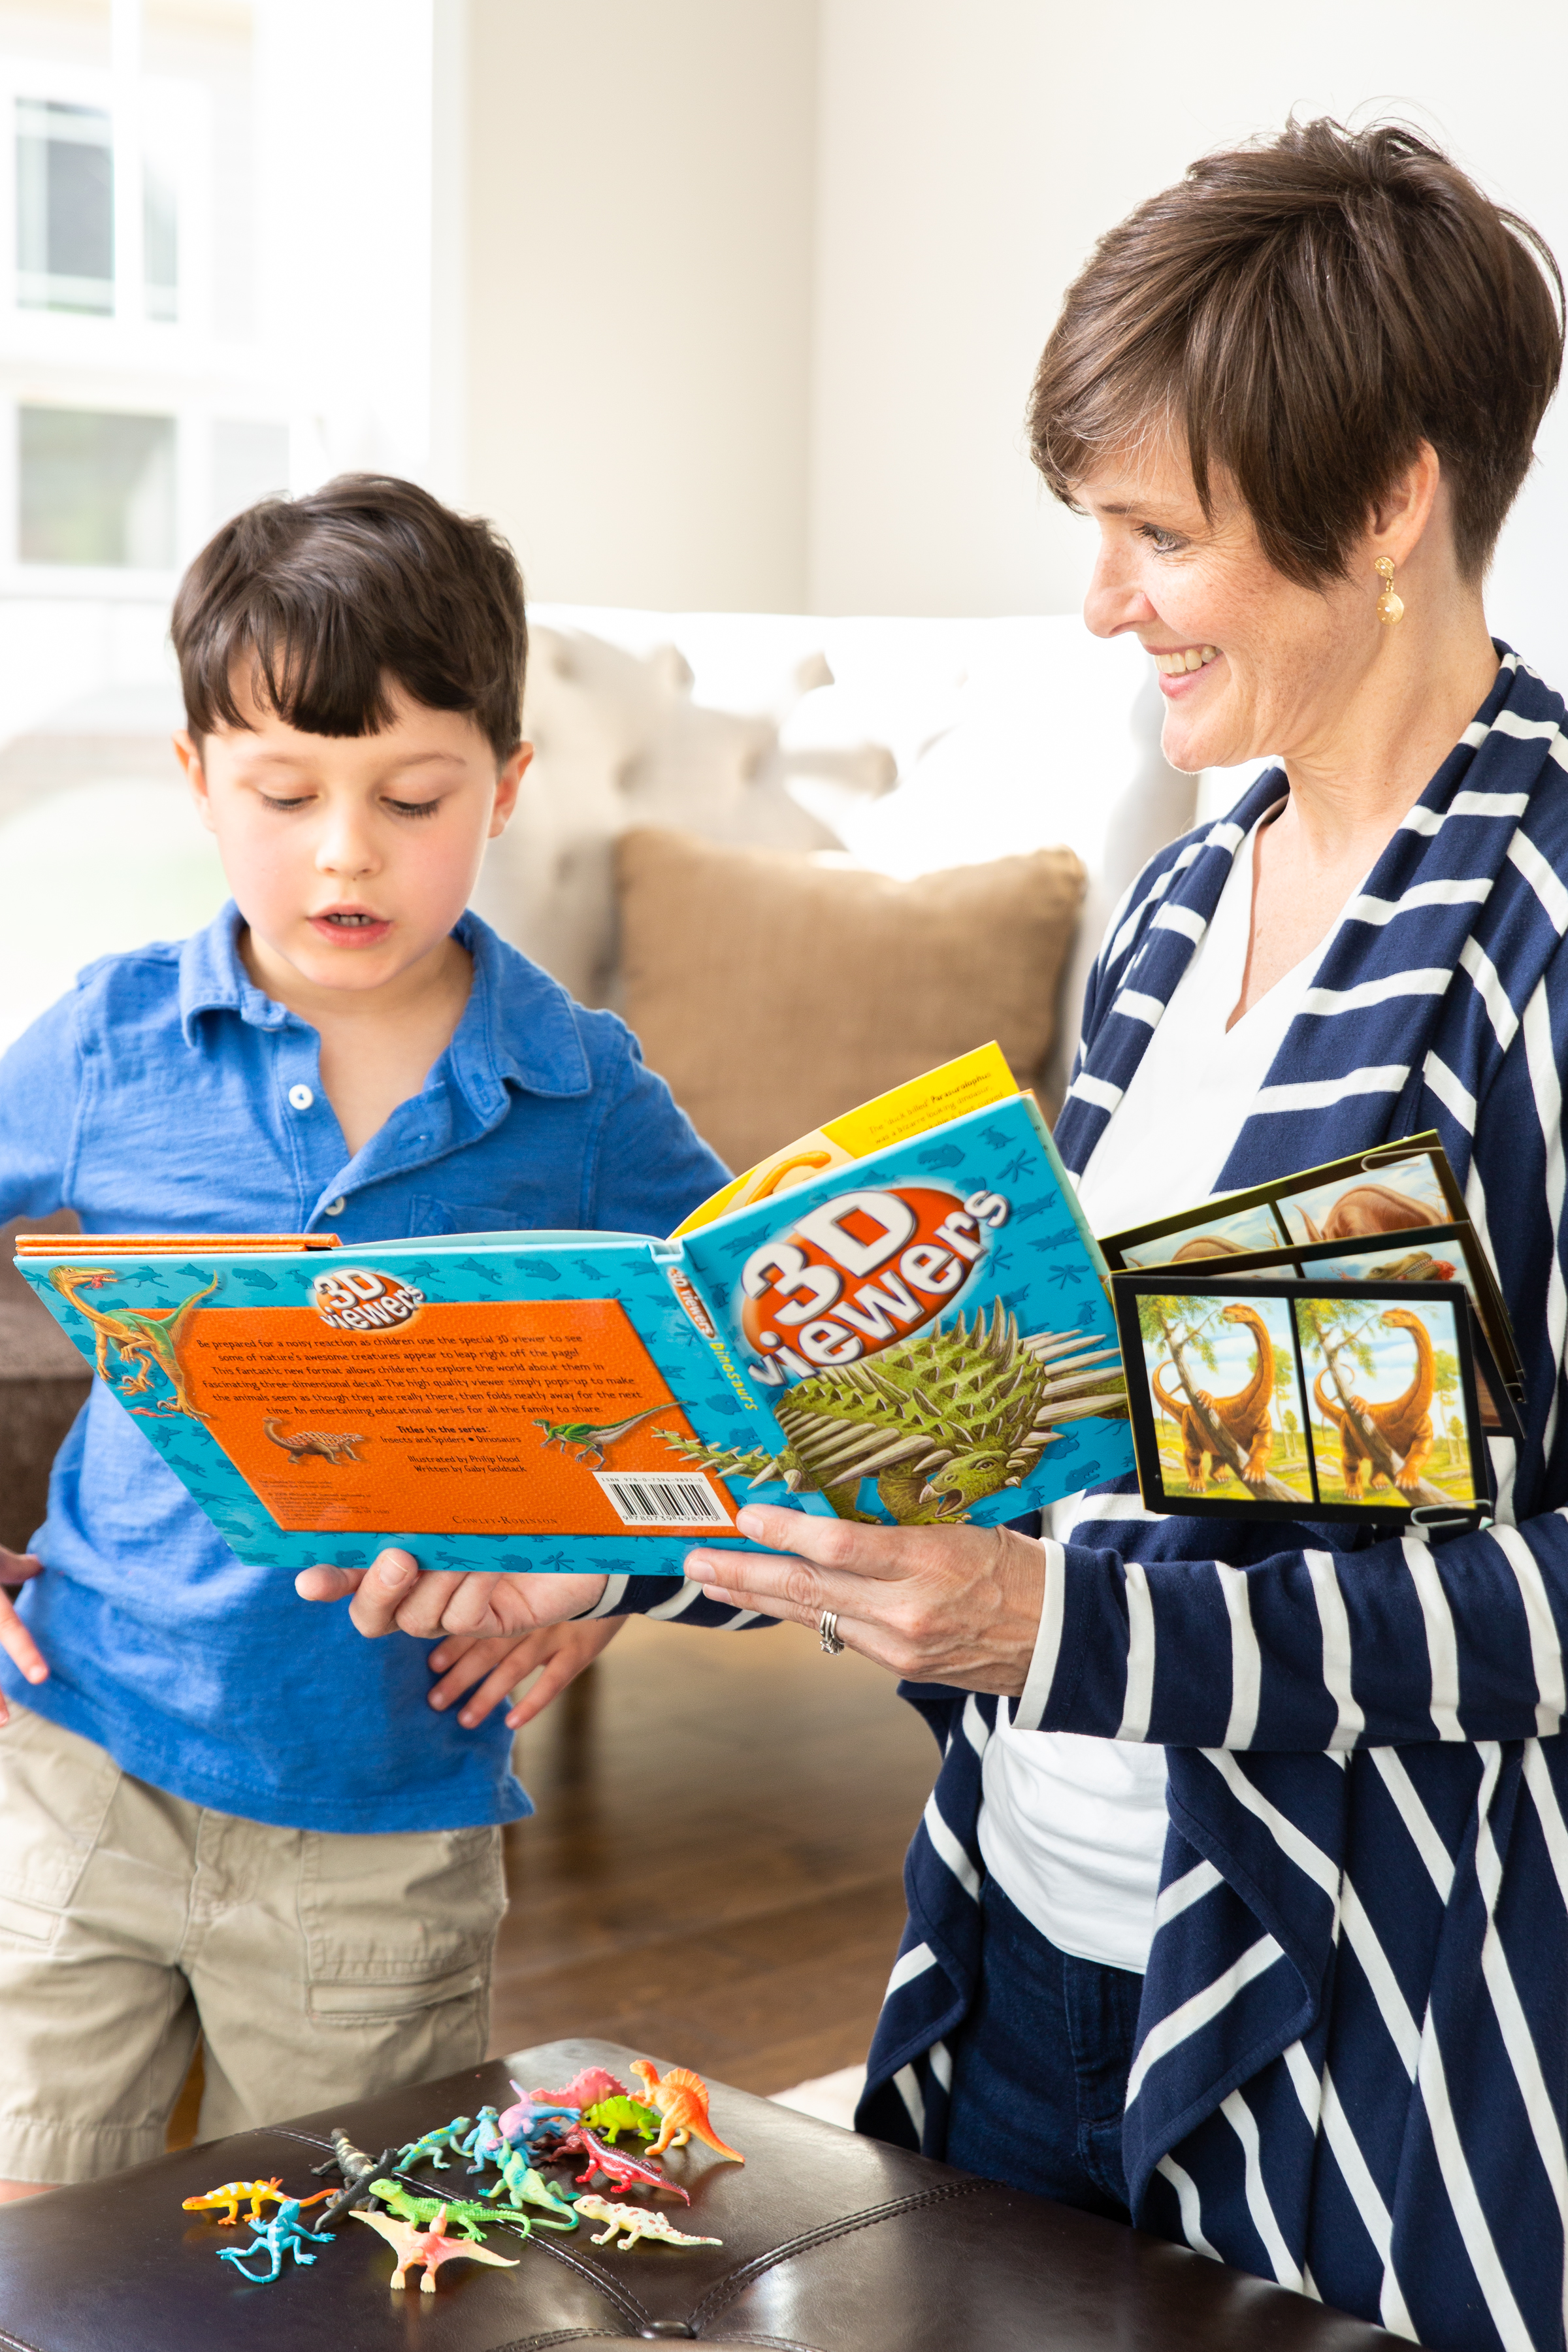 Speech Therapist With Young Boy